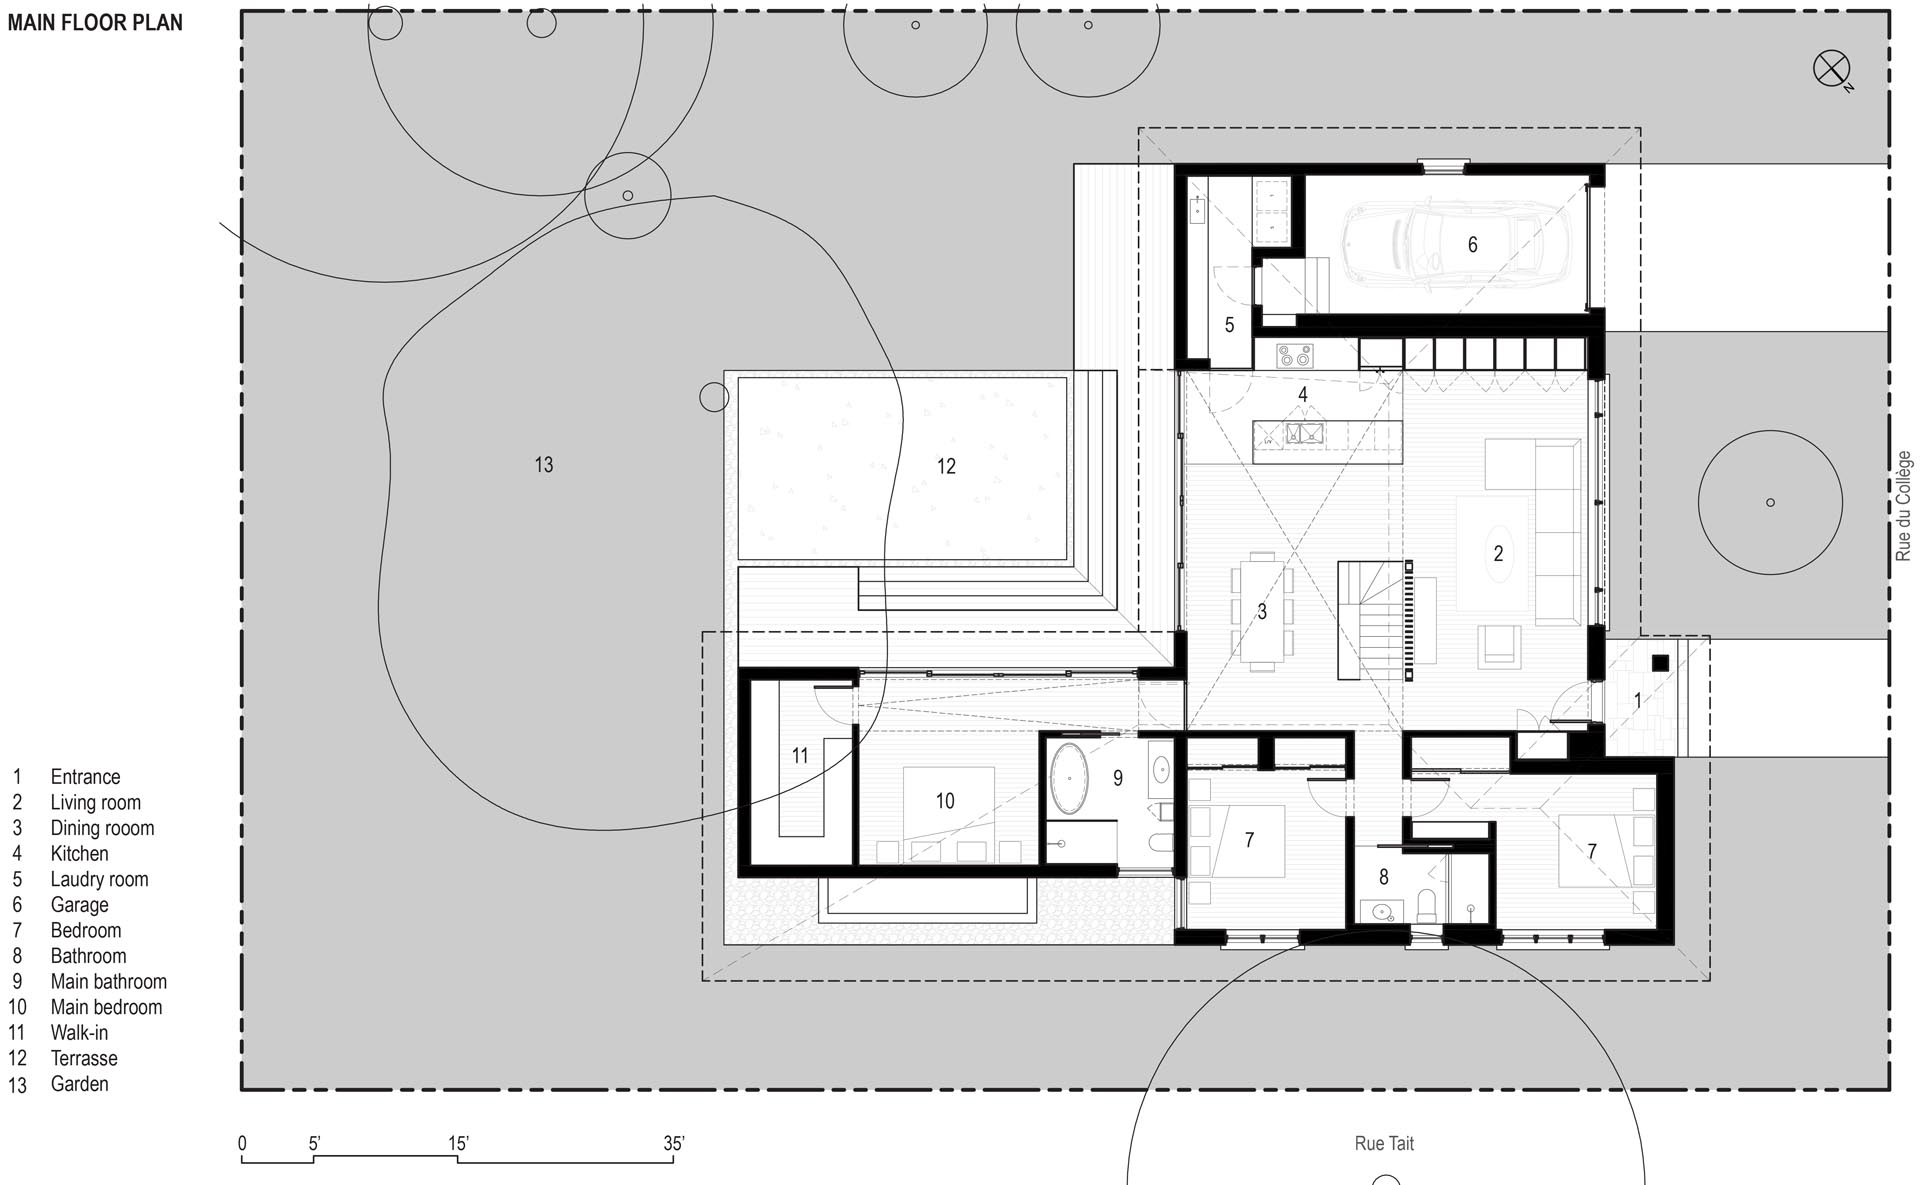 The floor plan for a modern home.